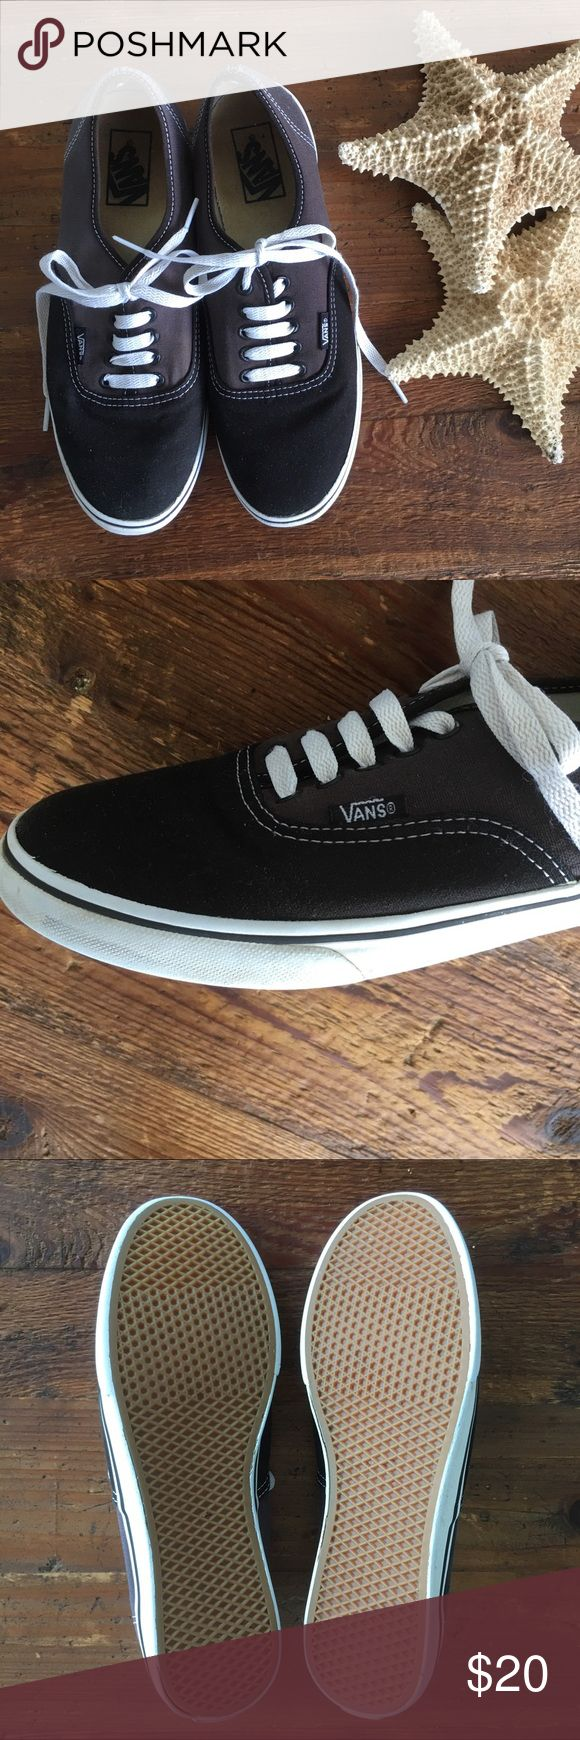 VANS two tone canvas board shoes Jet black and slate gray canvas VANS in excellent condition. The interior sole has slight normal discoloring as shown in photos. The exterior is in fantastic condition! Completely sanitized and ready to wear! Shoes Sneakers